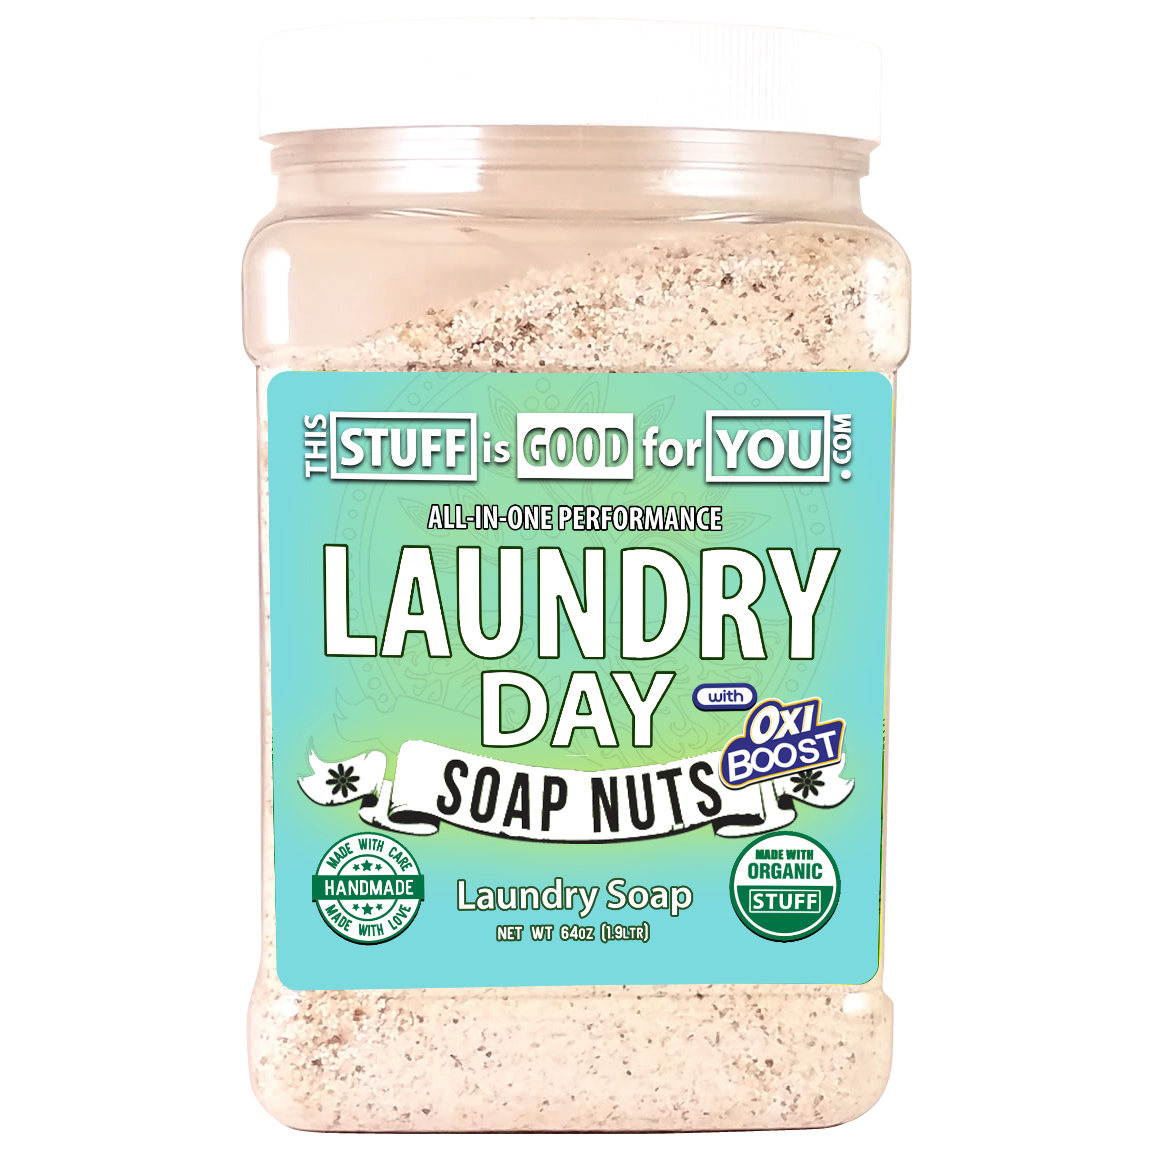 64oz Laundry Day  Soap Nuts All-Performance Laundry Soap